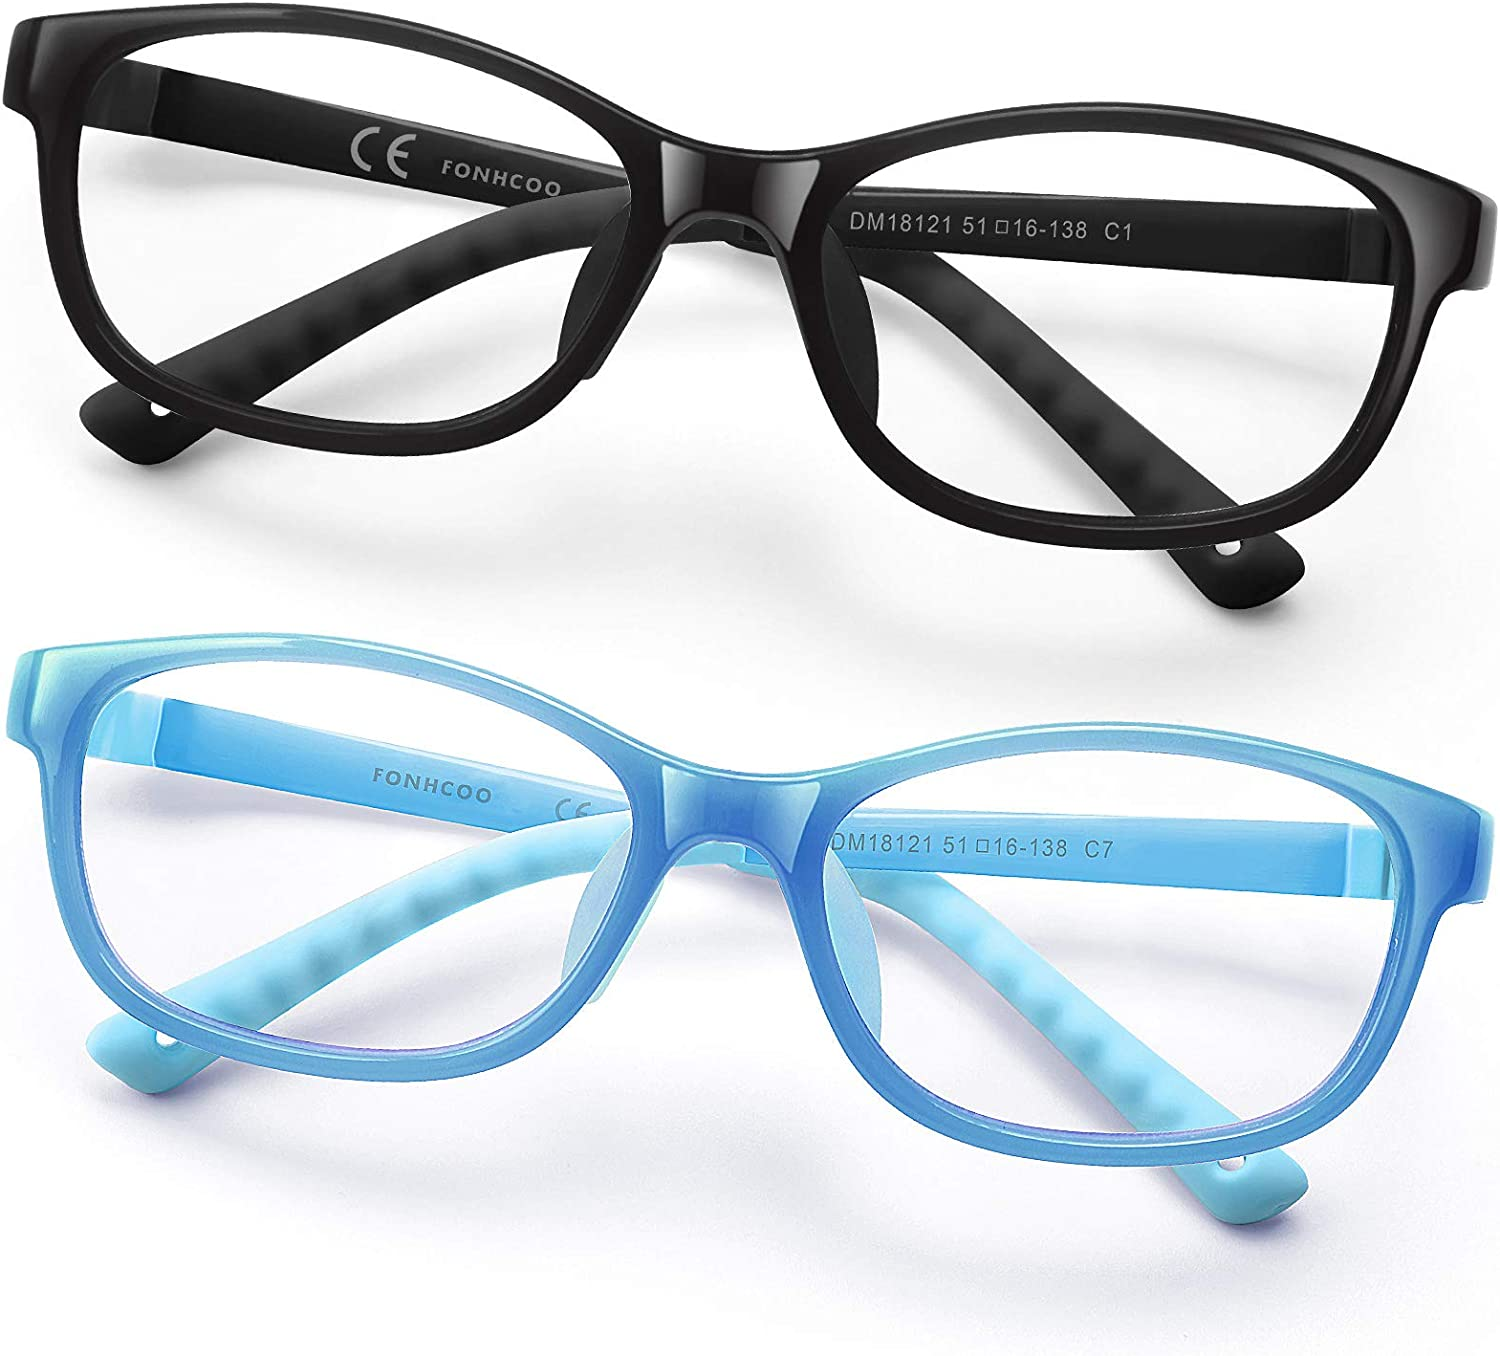 FONHCOO Kids Blue Light Blocking Glasses Computer Glasses for Boys and Girls Age 3-15 with Glasses Strap